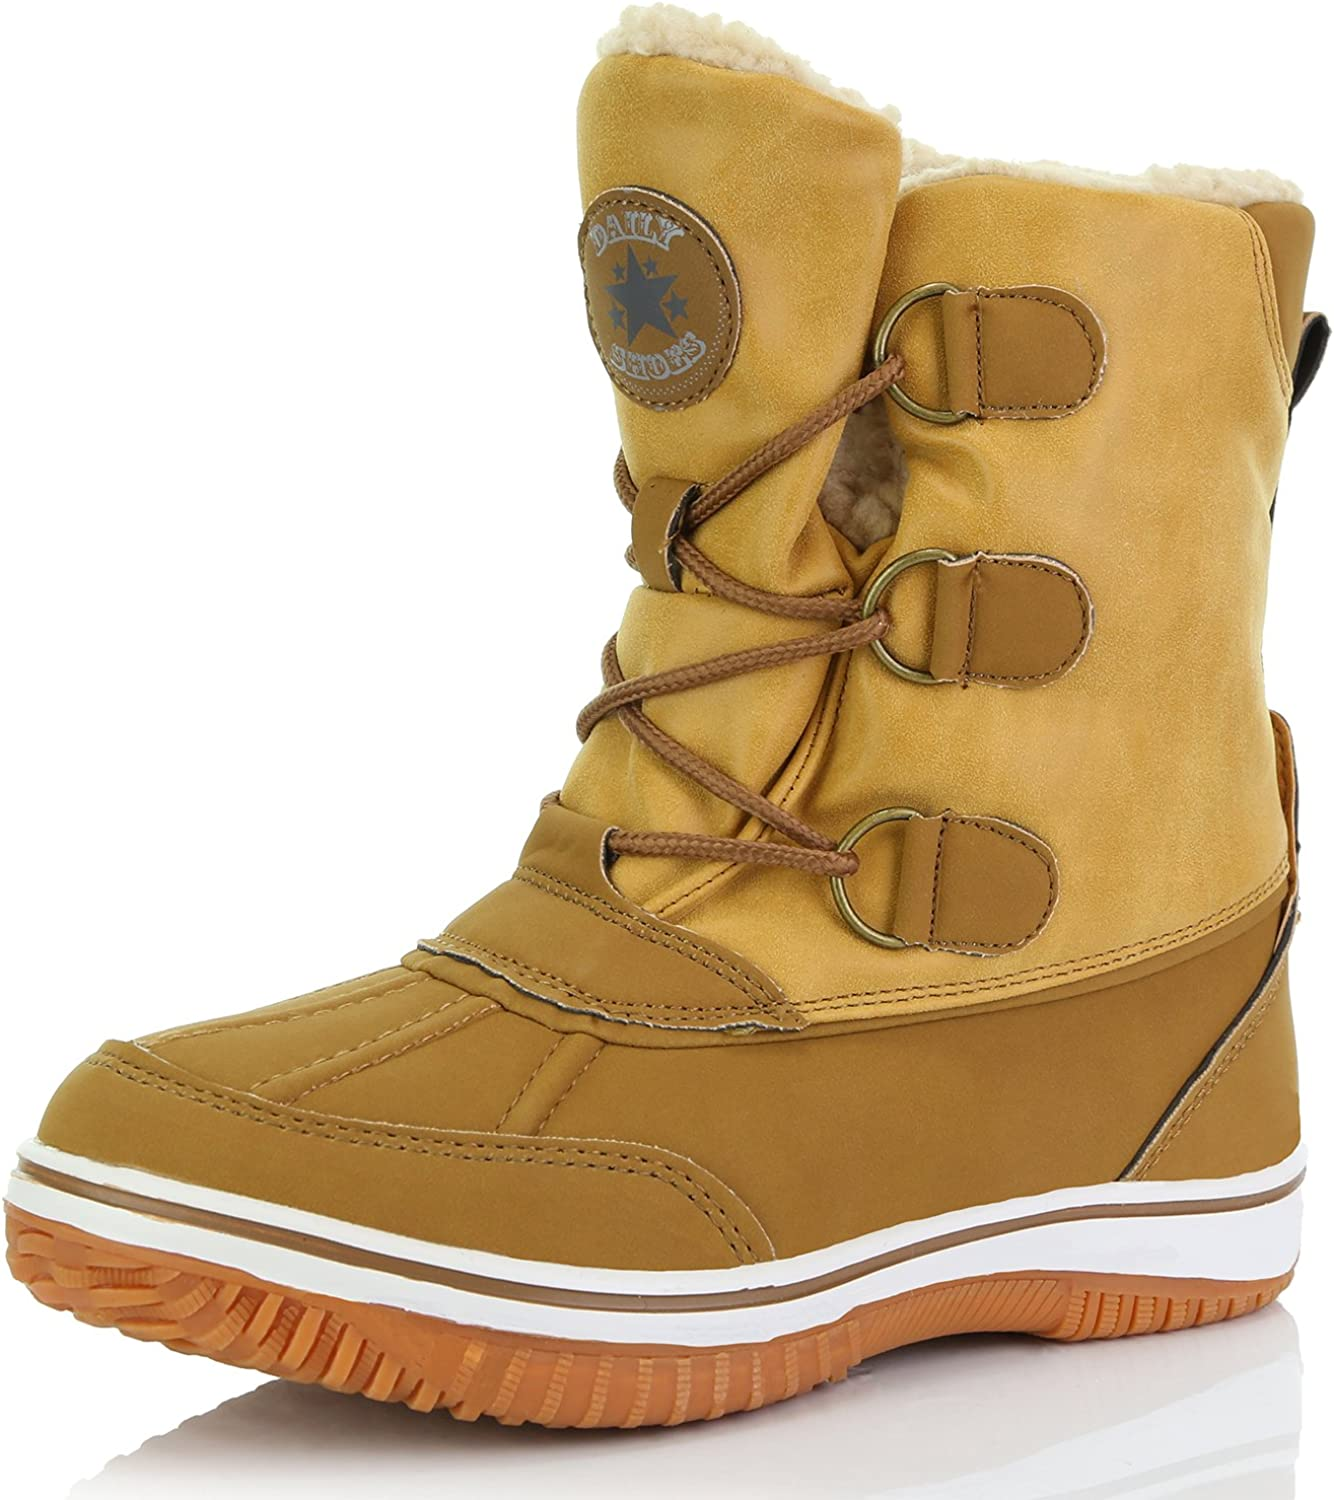 DailyShoes Women's Up Ankle High Mid Calf Artic Warm Fur Water Resistant Eskimo Snow Boots